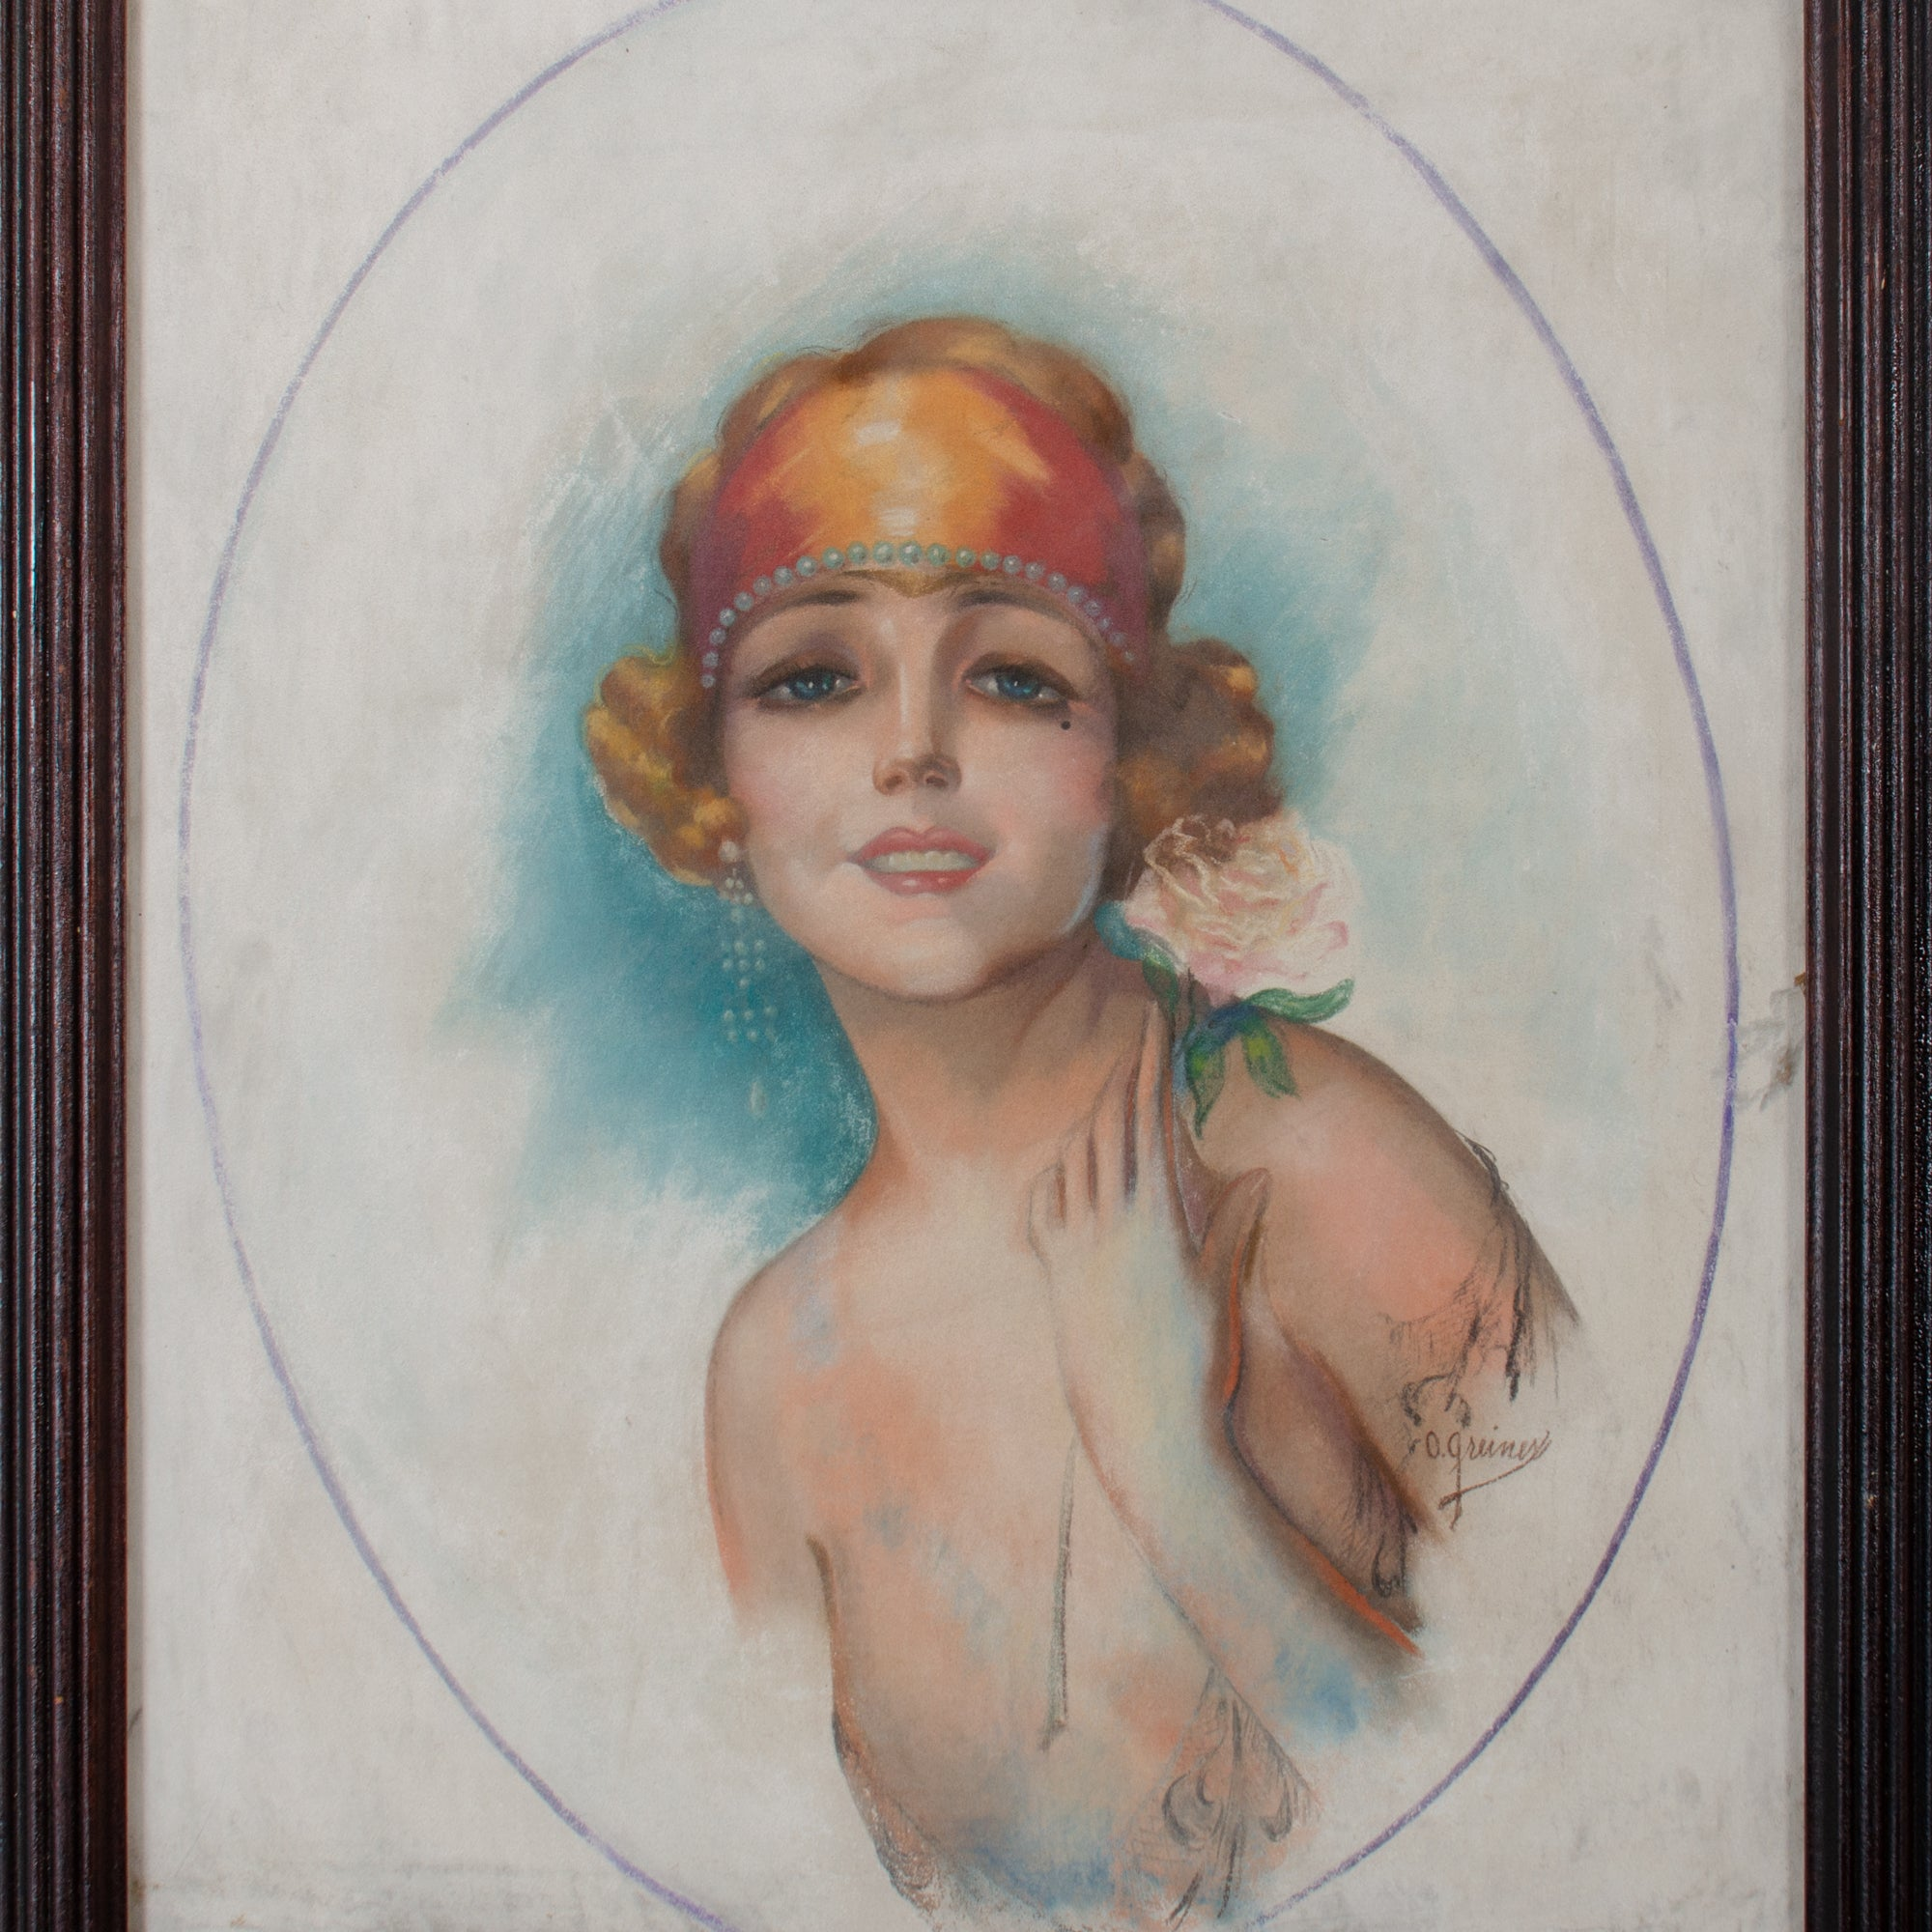 1920s Flapper Girl Magazine Illustration by Oscar Greiner